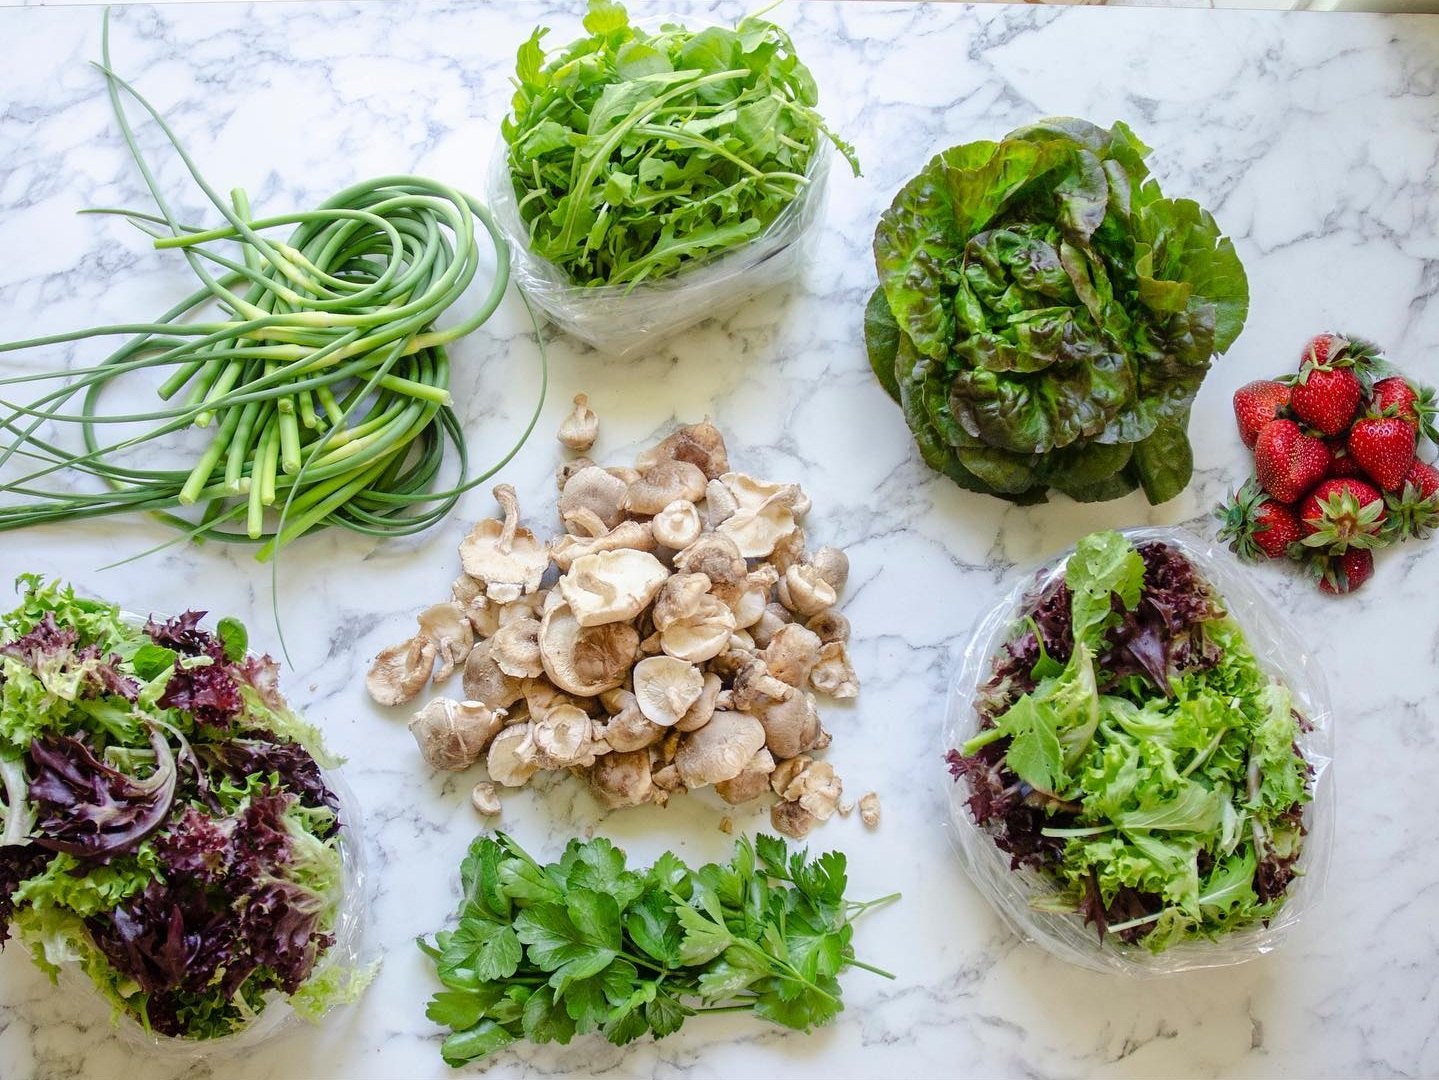 5-6 varieties of produce, just double the volume of a starter. Recommended for 4+ person households, or folks who just like their veggies.